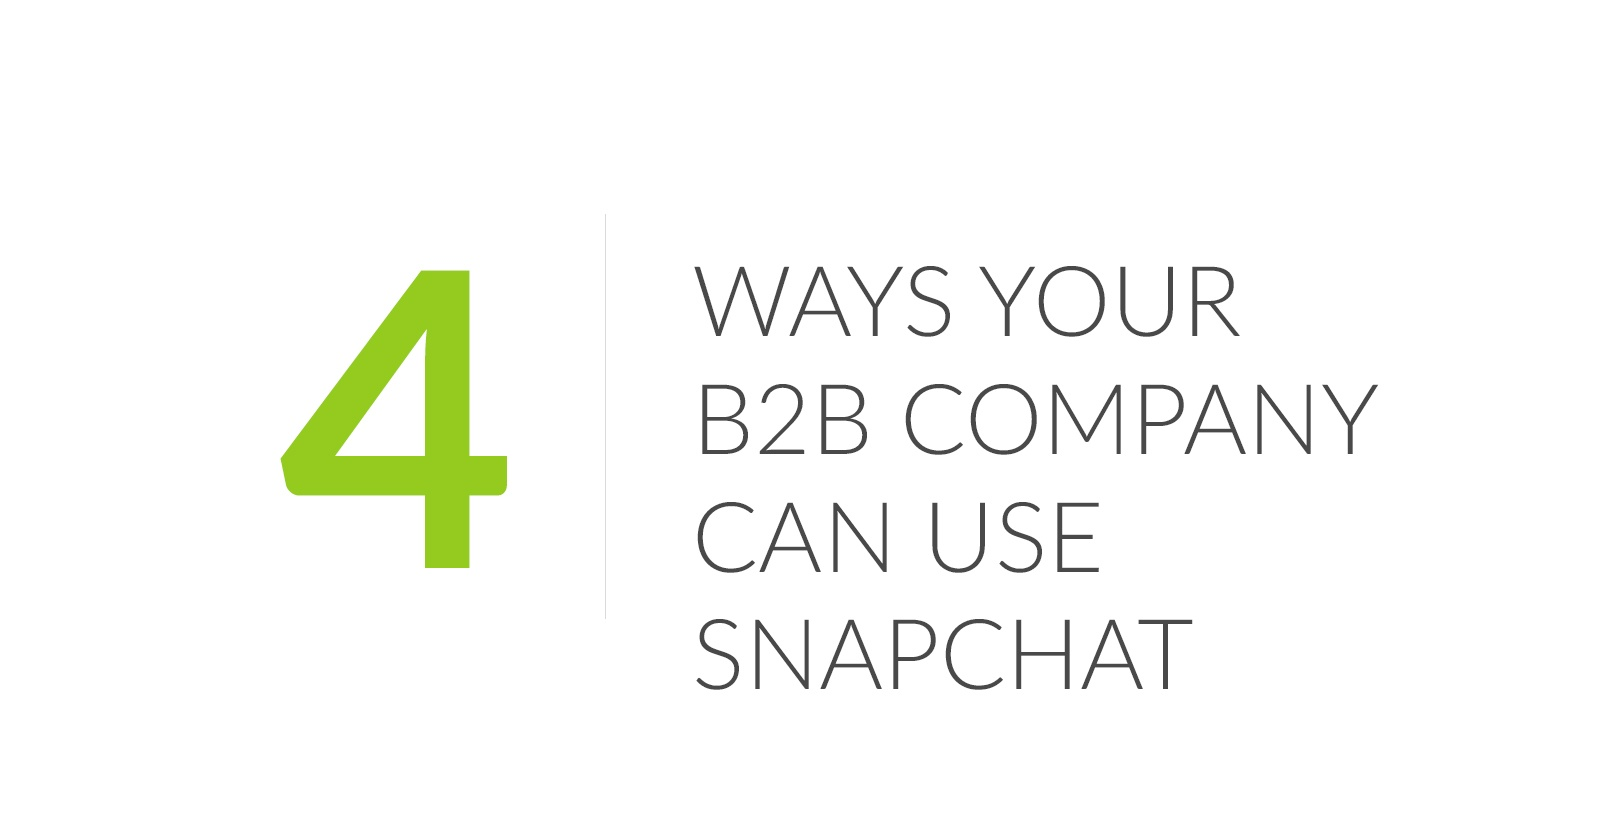 4-ways-your-b2b-company-can-use-snapchat.jpg?noresize